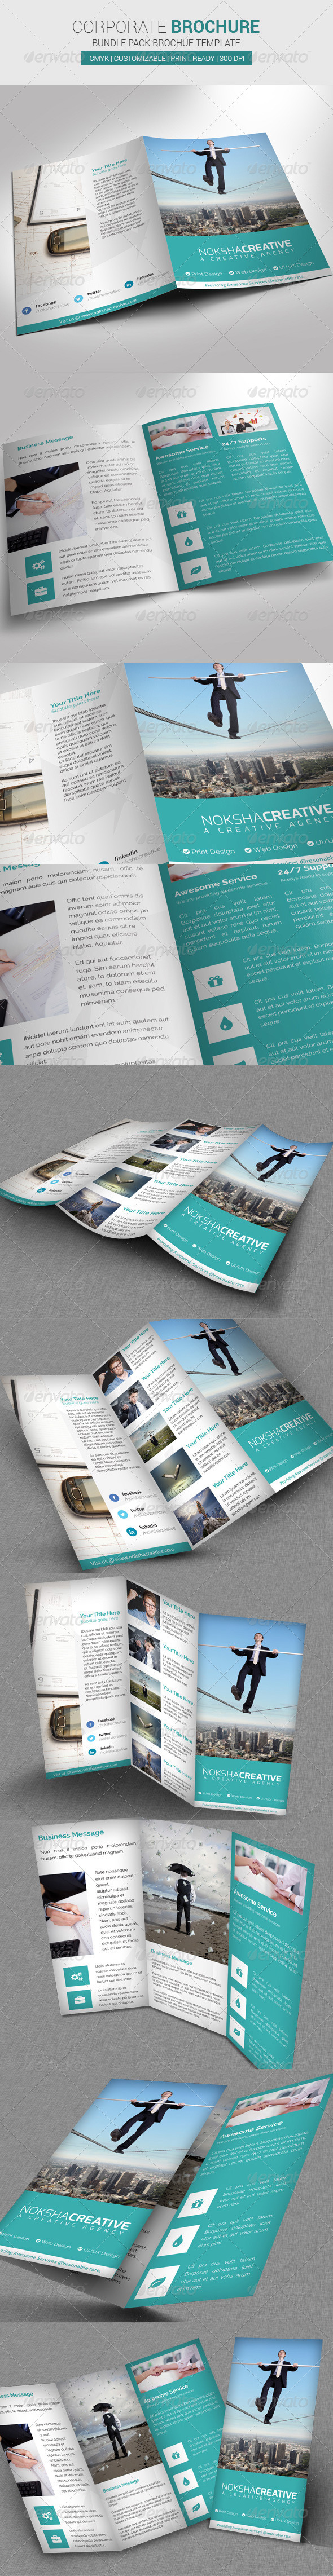 Bundle Pack Brochure - Corporate Brochures